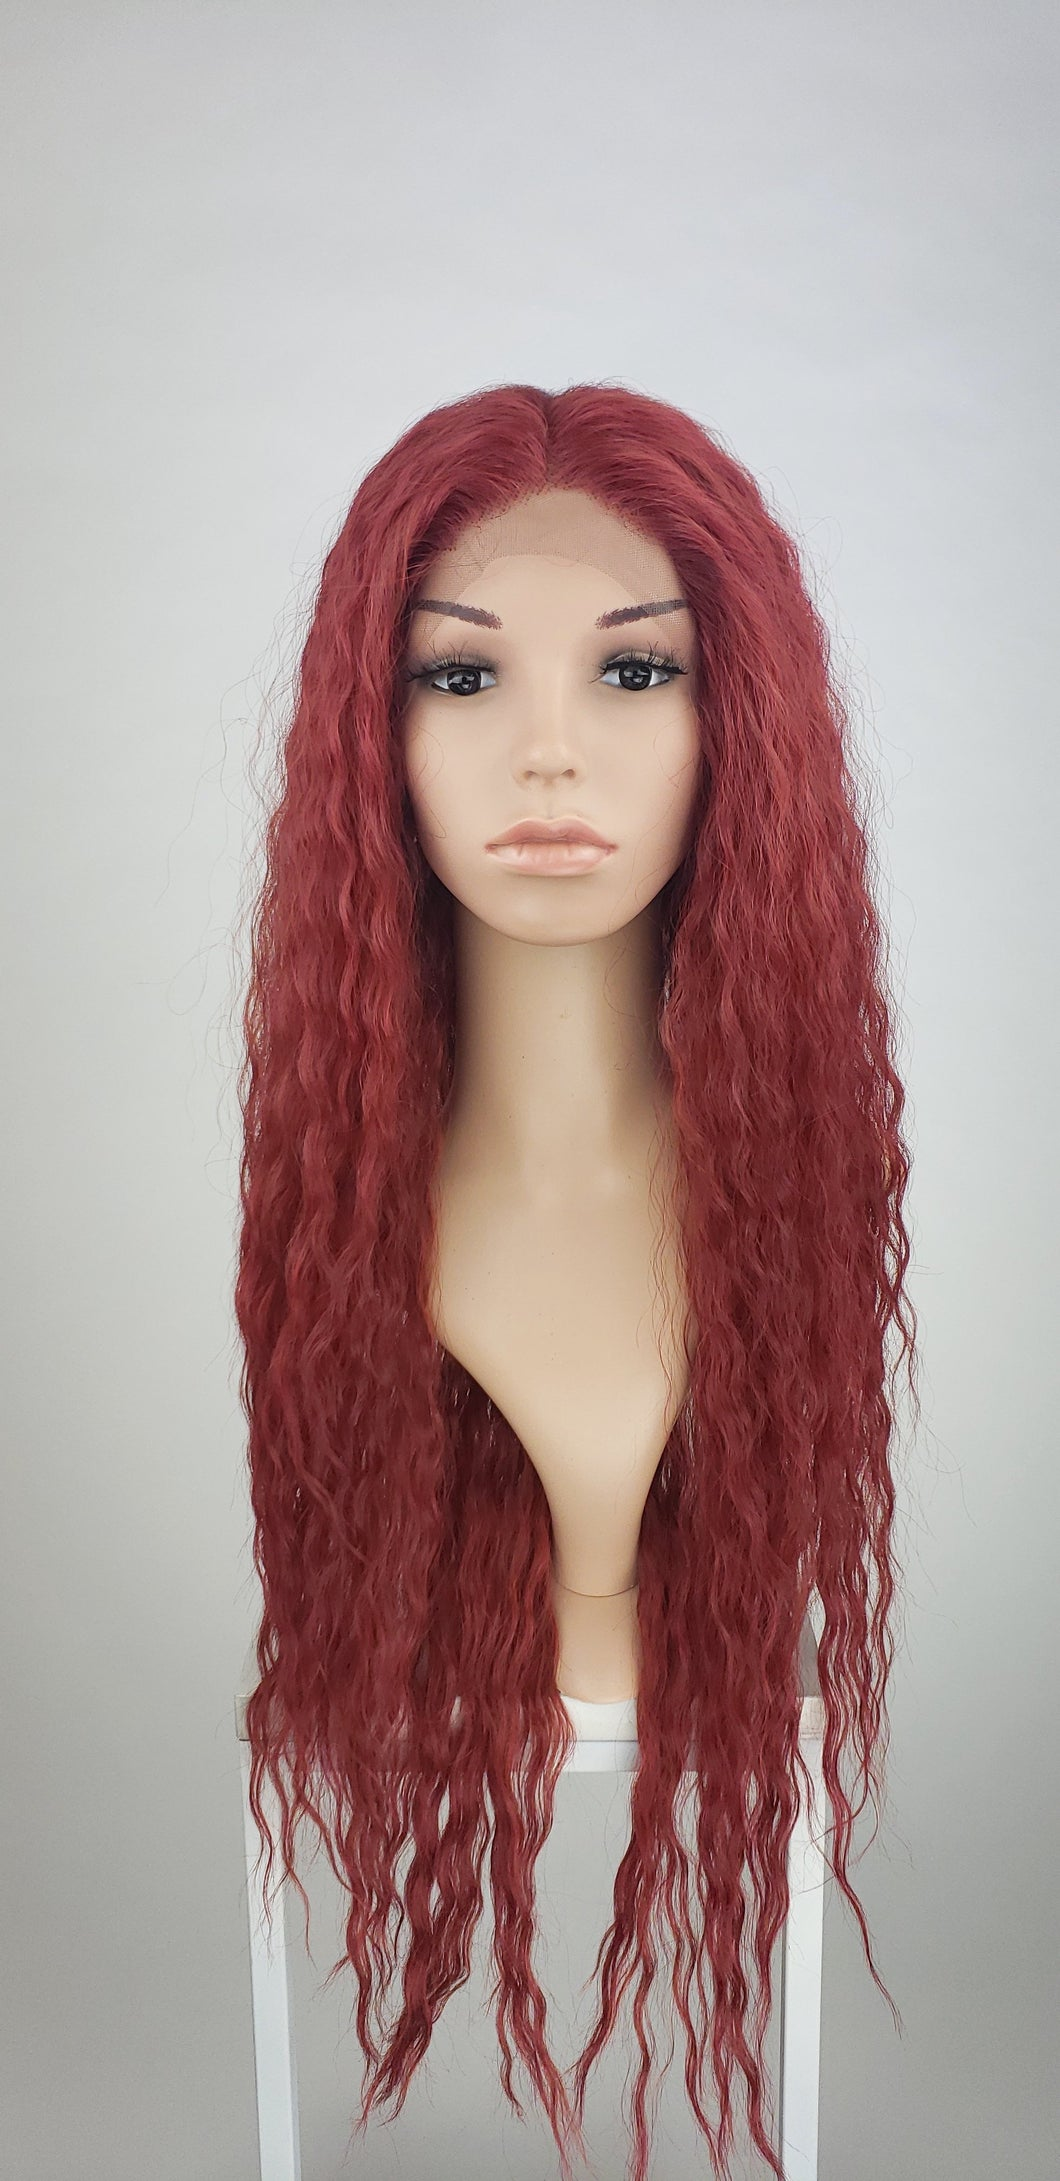 Pose Wigs Cherry Red Long Curly Lace Front Wig - Duchess Series LDRVN99